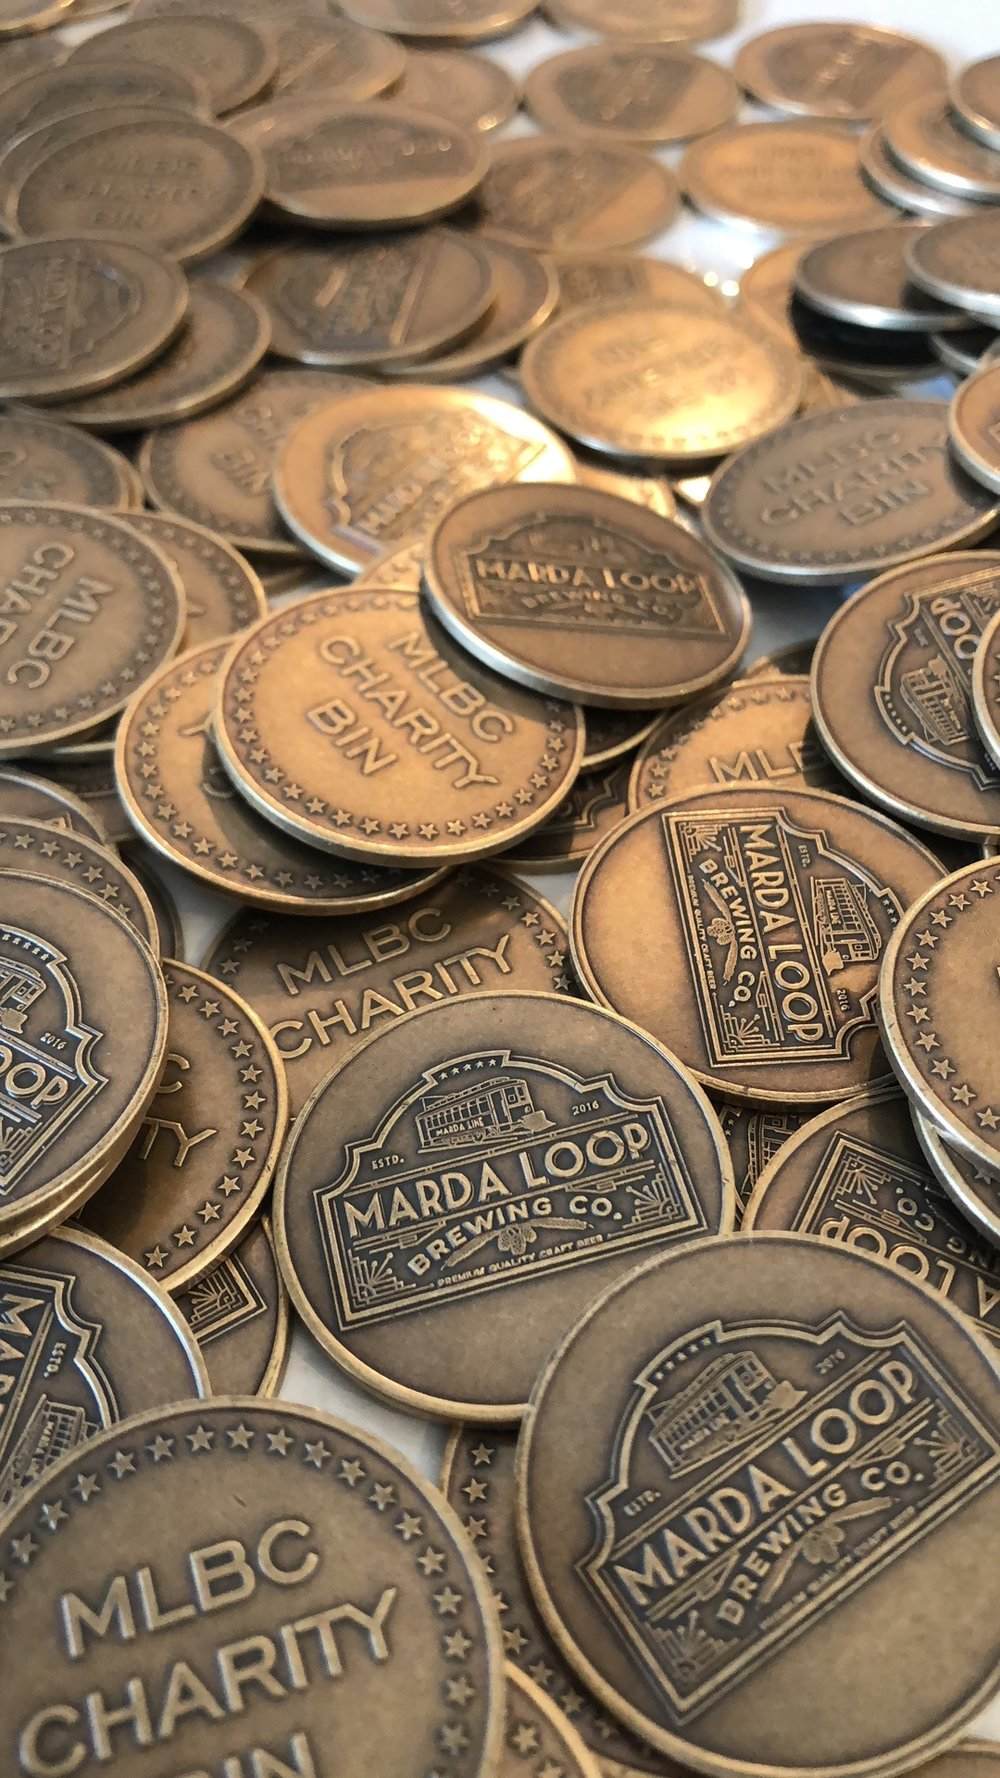 We believe in giving back. - Marda Loop Brewing believes in putting people and community first. For them, it's a no brainer. They believe in sharing the fruits of their labour with those less fortunate through their signature charity bin program.  Patrons designate the charity of their choice through Marda Loop Brewing's fun and unique coin collection system.Following your beer purchase, you will recieve a coin. Simply walk over to the charity bins and donate to the cause of your choice. Know of a charity or person in need?Fill out the form below to nominate them!Come on in and talk to one of our staff members to find out more and how you can get involved. #mlbccharitybins